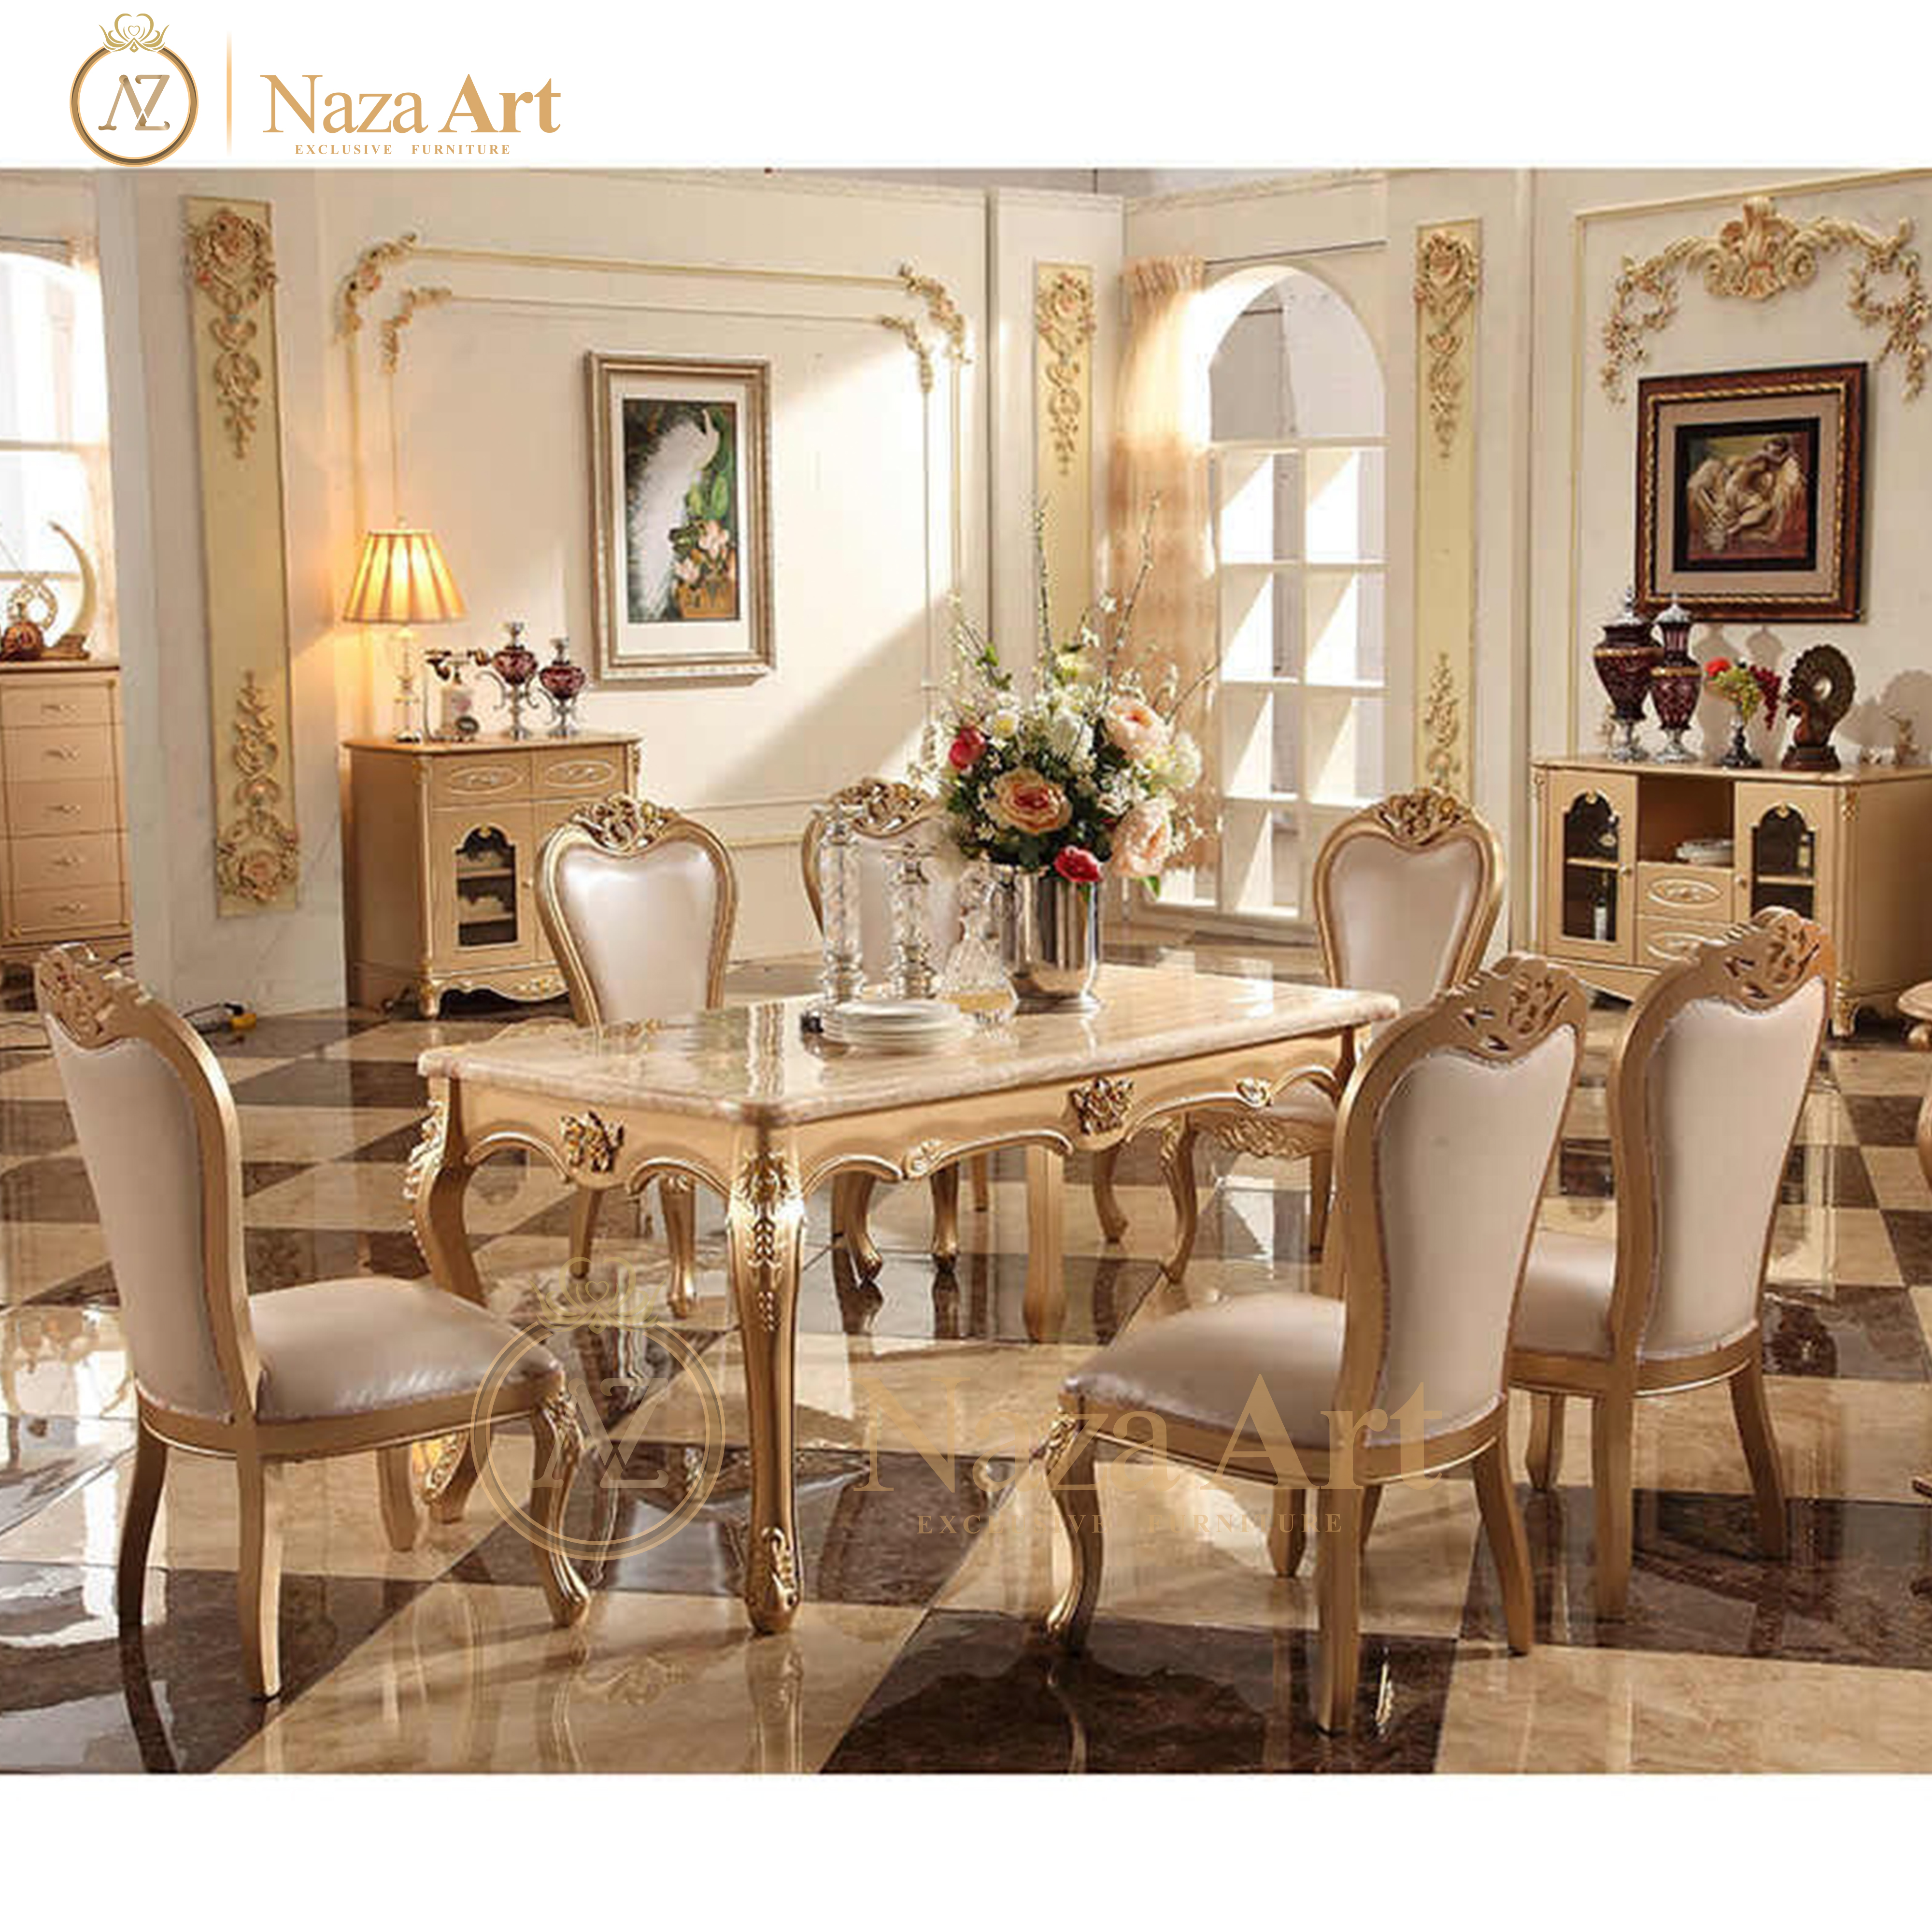 Dining Table Luxury Antique Italian Style Classic With Solid Wood ...